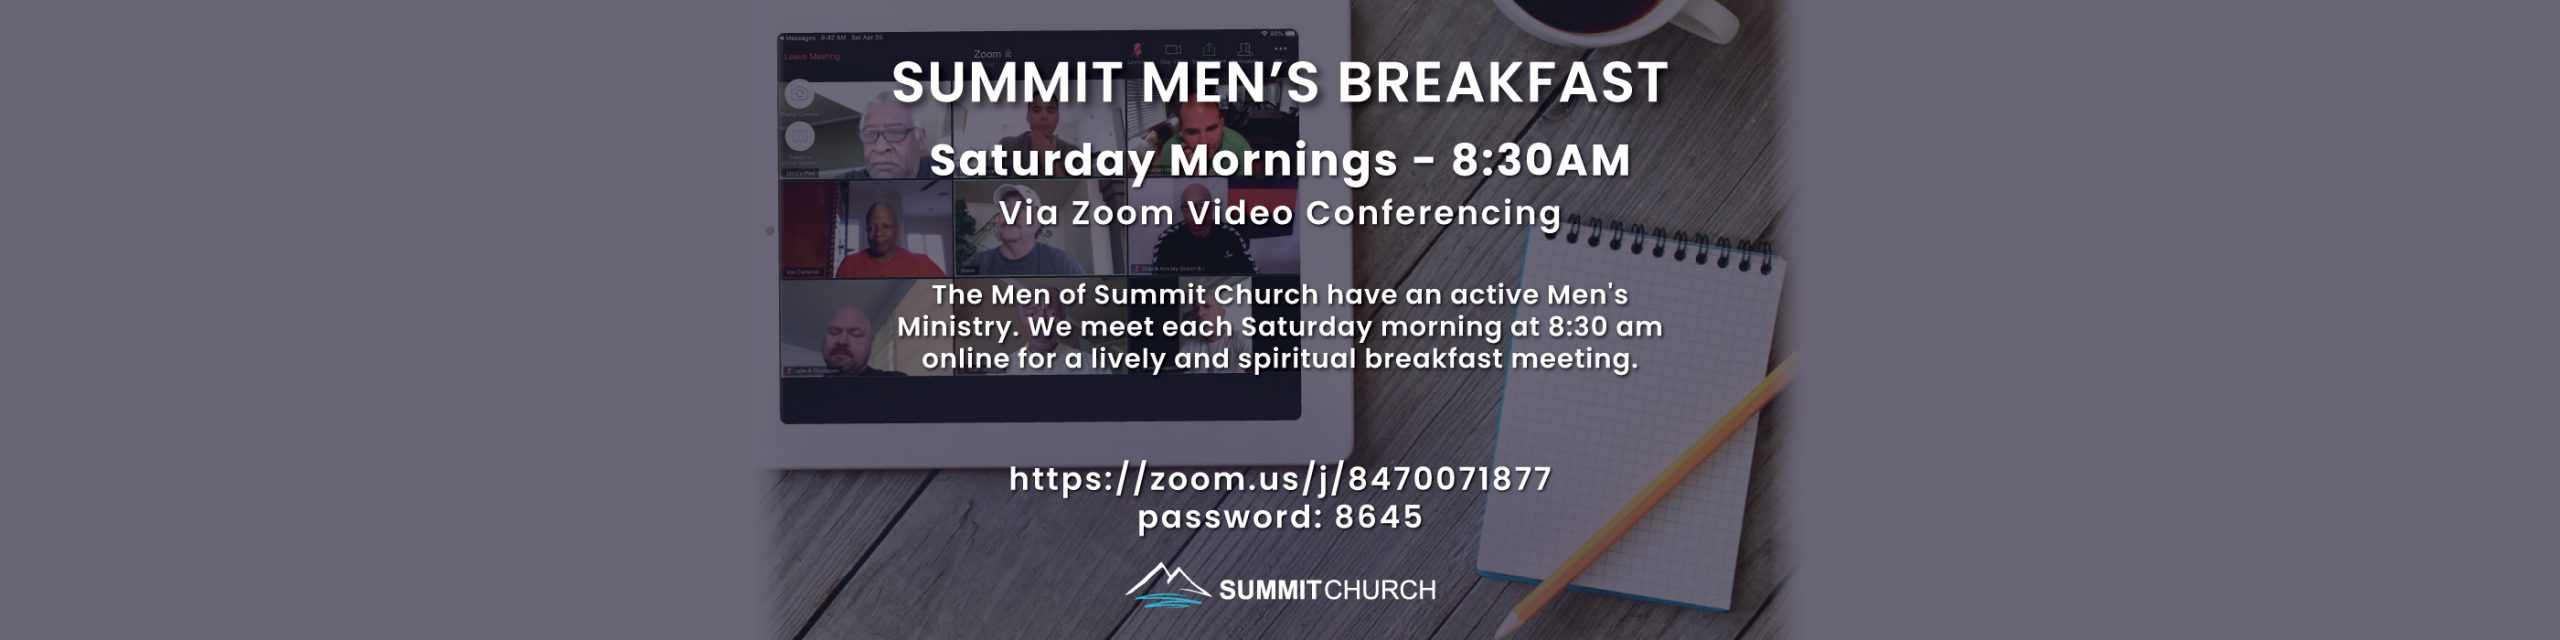 Summit-Online-Mens-Breakfast-2-0420-2800x700-1-scaled